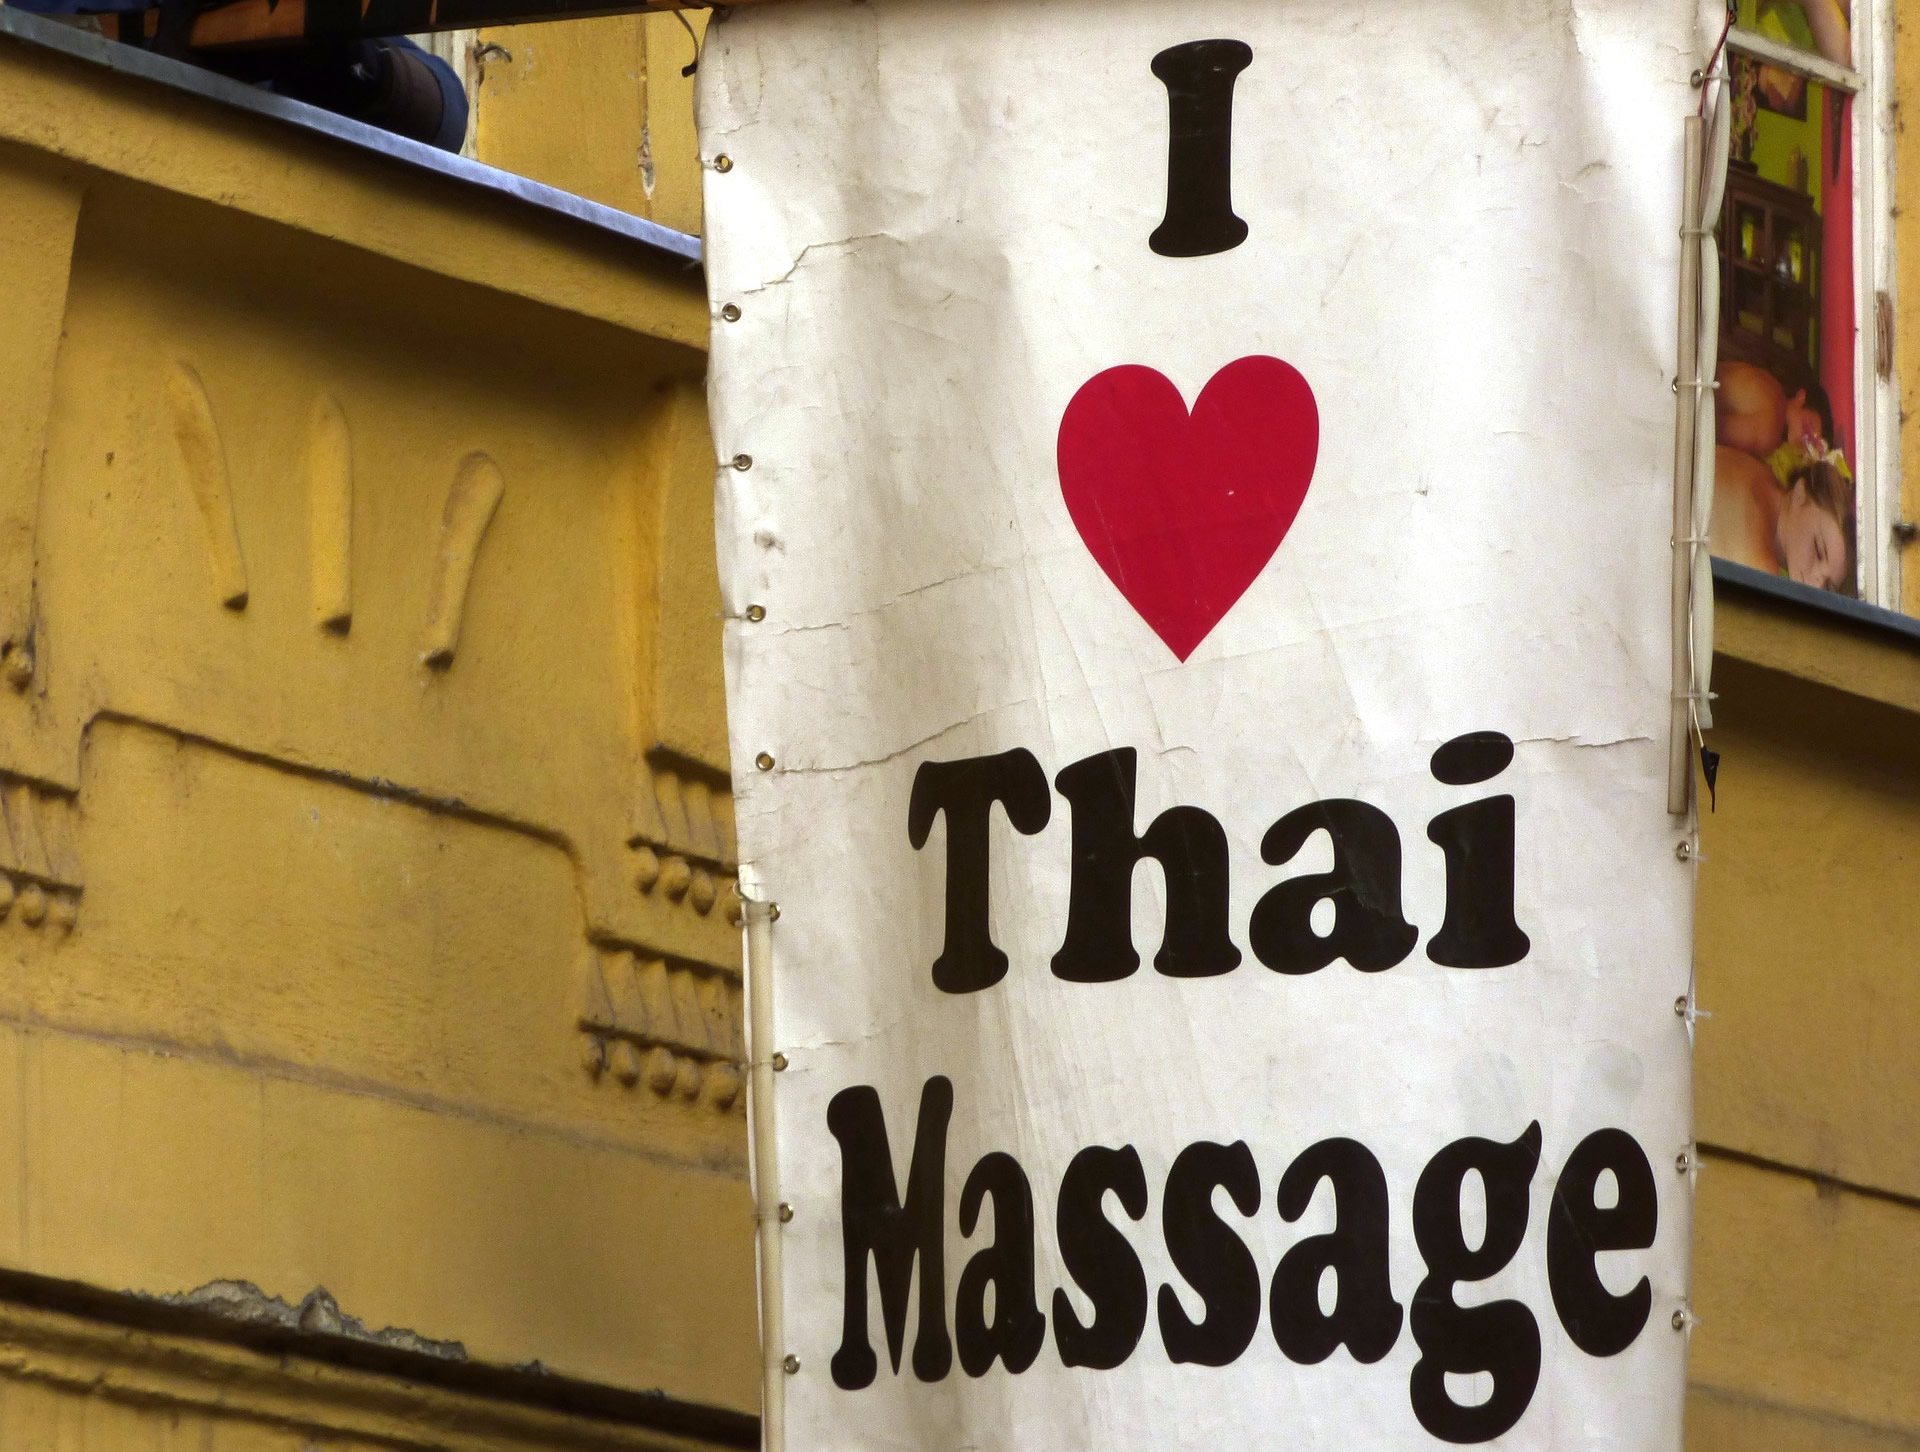 the history of thai massage